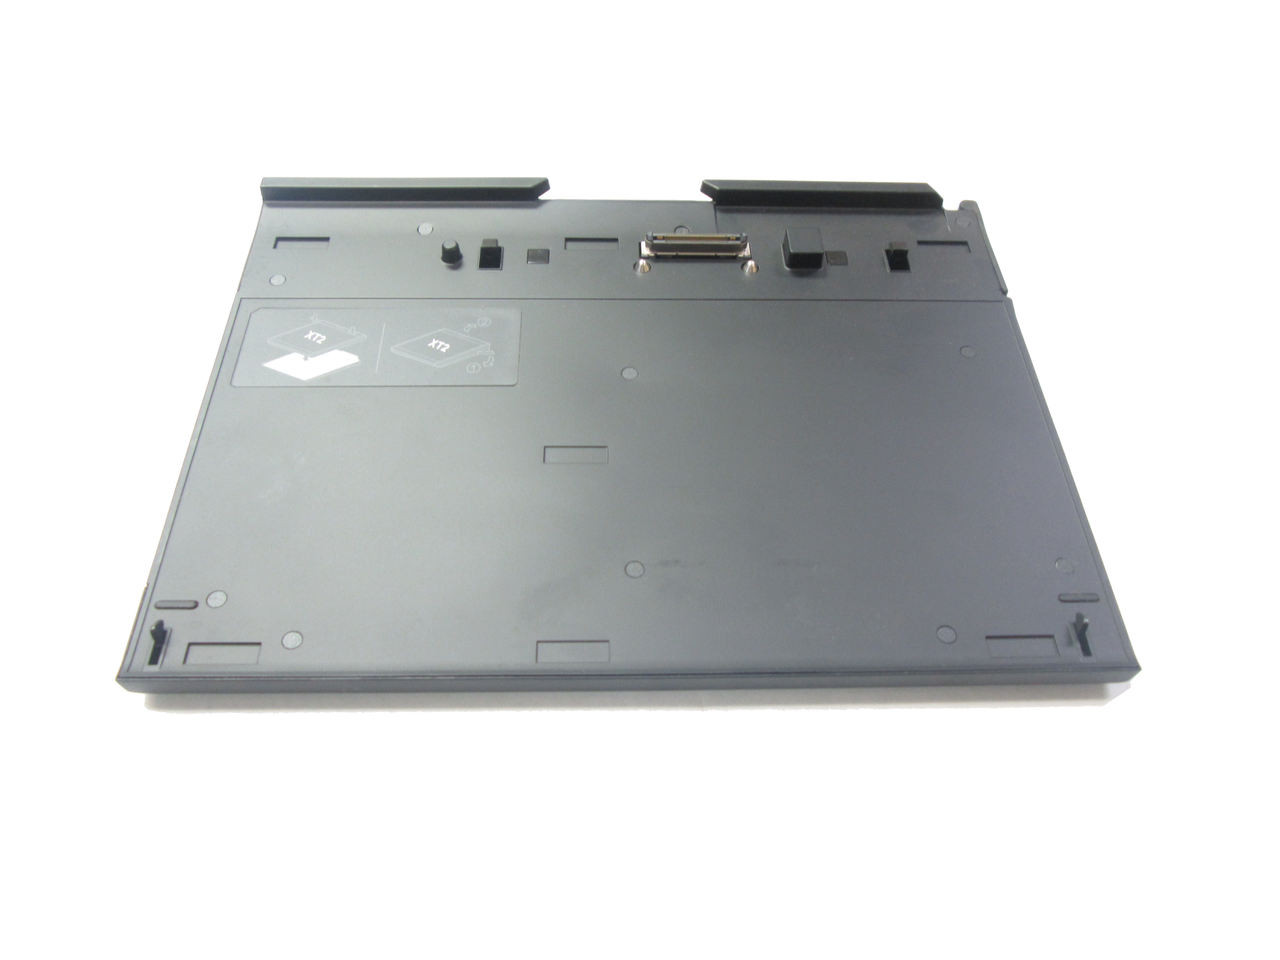 Dell Latitude ST Series Docking Station Dock Tablet PC 0VDKTY w//Power Supply